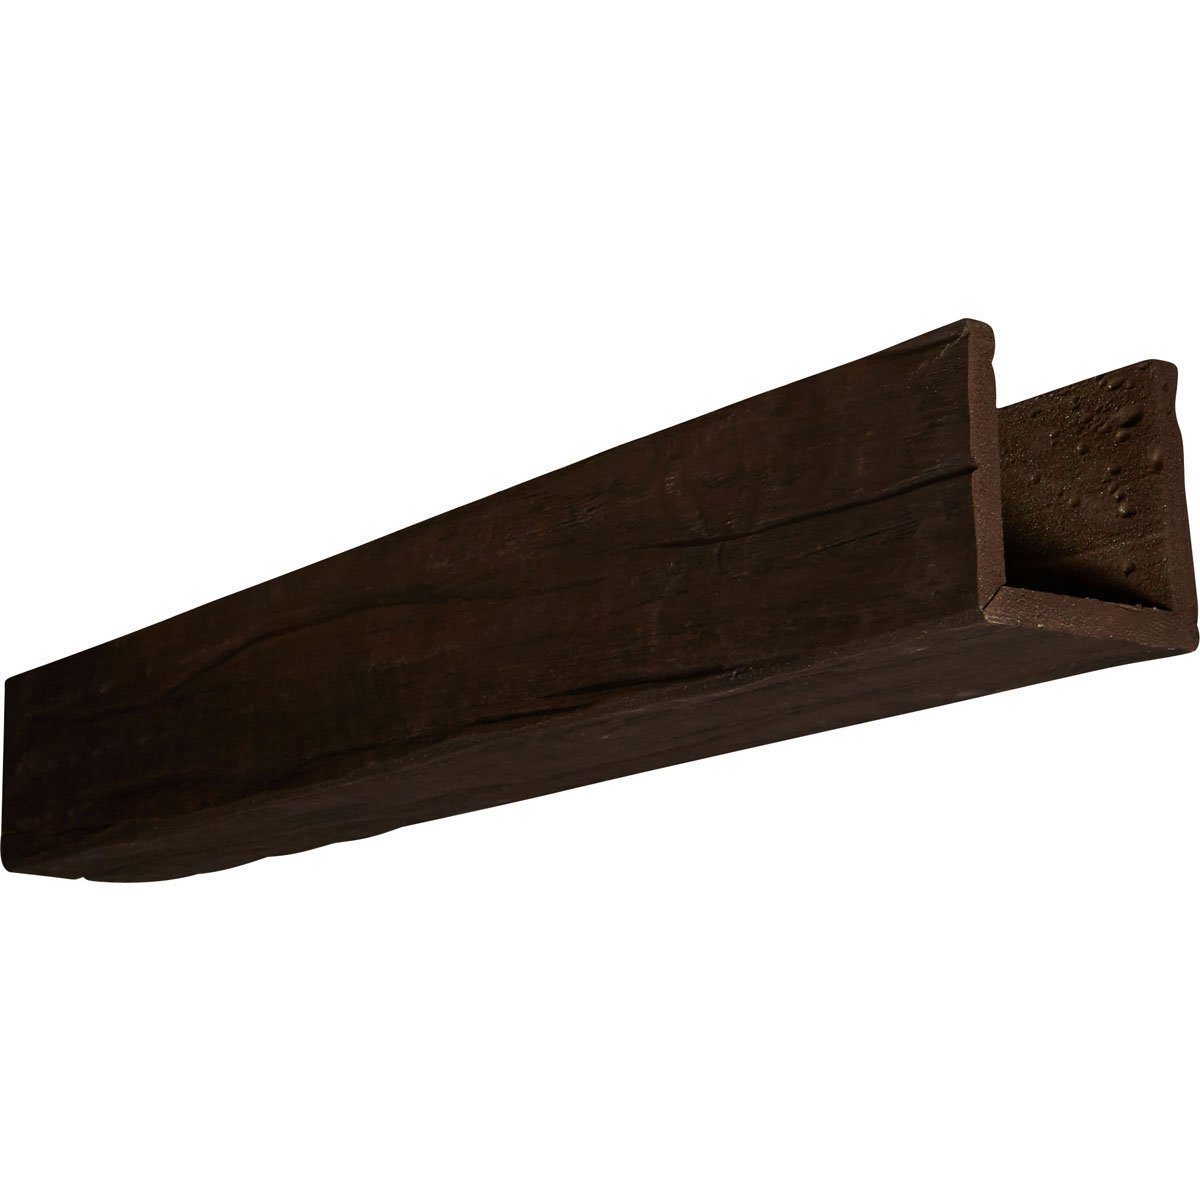 Ekena Millwork BMRW3C0040X040X096ES 4''W x 4''H x 8'L 3-Sided (U-Beam) Riverwood Faux Wood Beam, Espresso Finish, 4 inch W x 4 inch H x 8'L